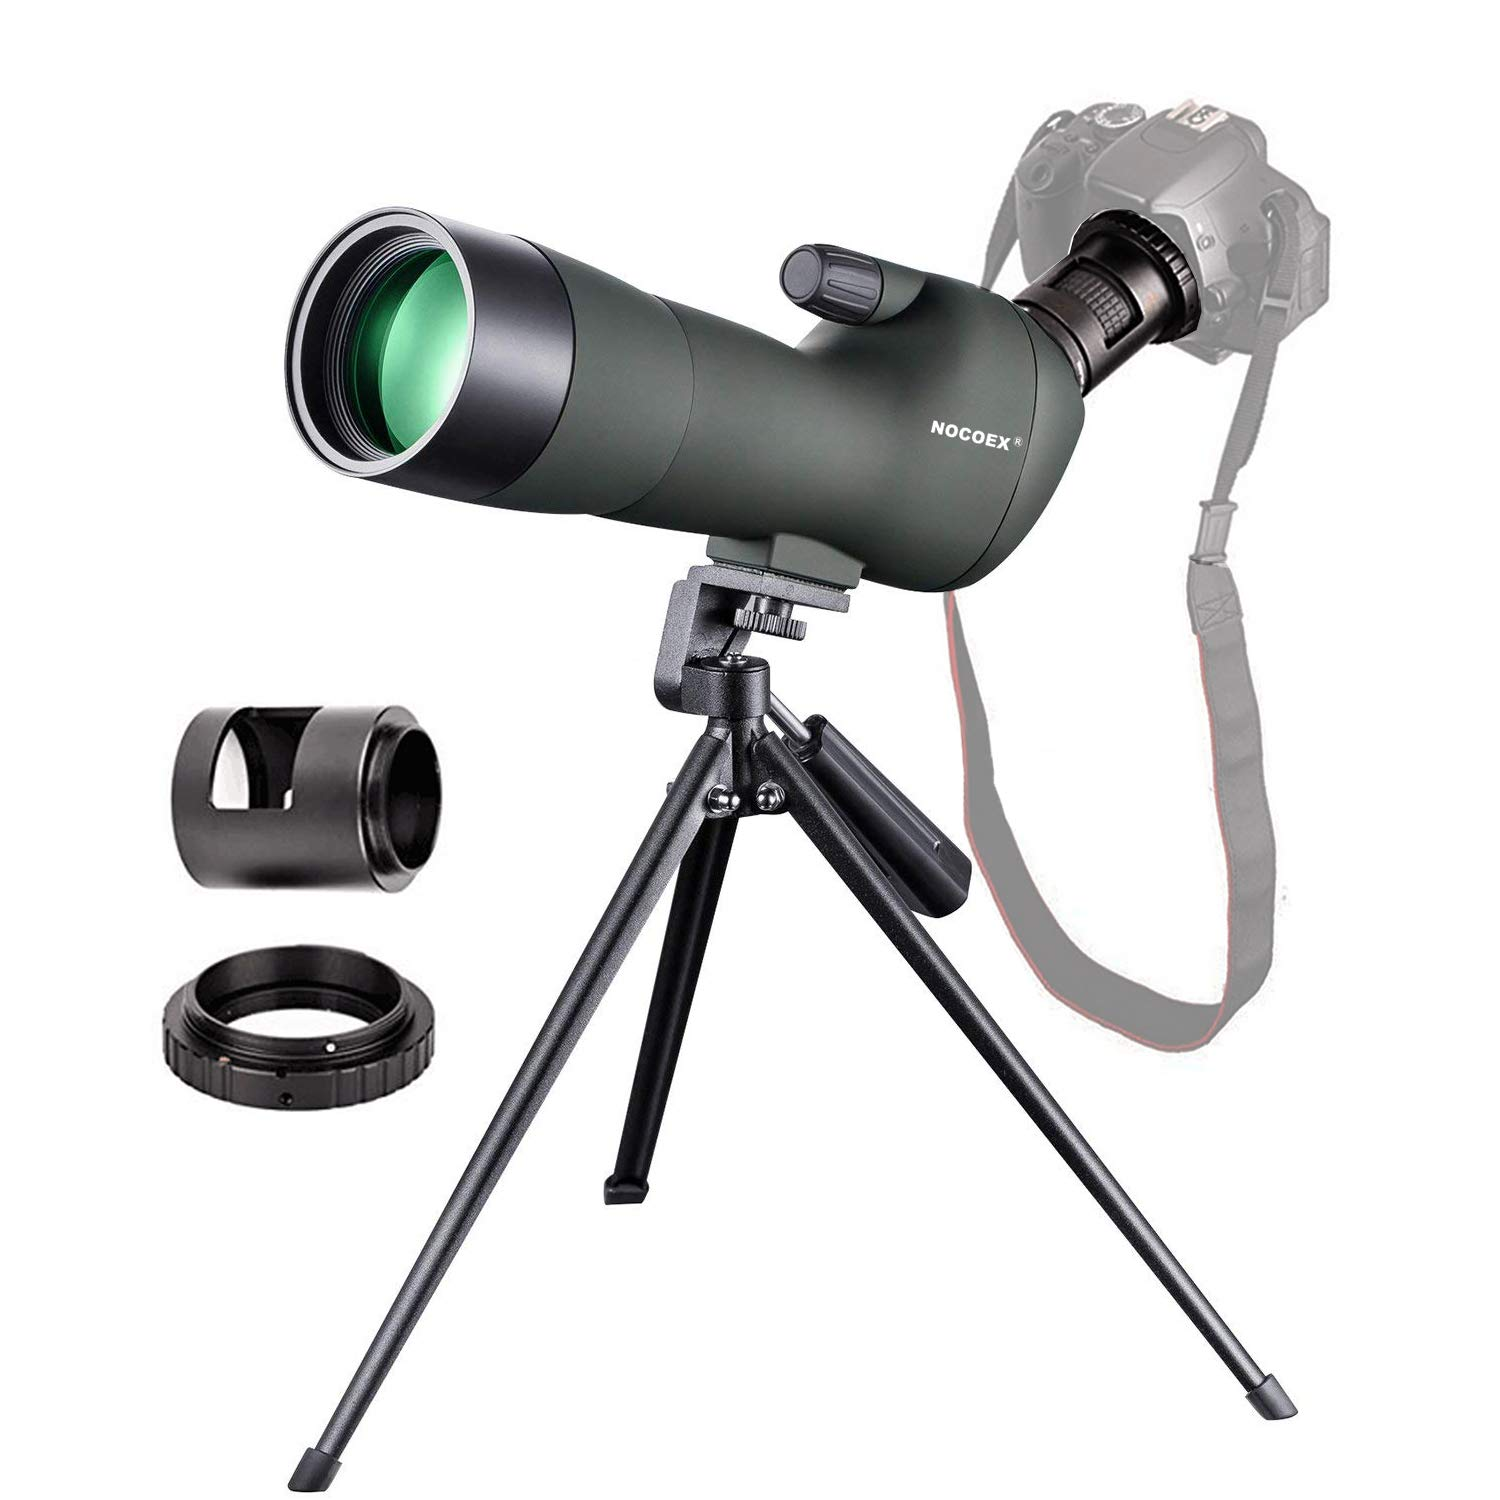 NOCOEX 20-60X60 Waterproof Zoom Spotting Scope- Prism Scope for Birdwatching Target Shooting Archery Outdoor Activities -with Tripod & Canon Photography Adapter-Get The Beauty into Screen by NOCOEX